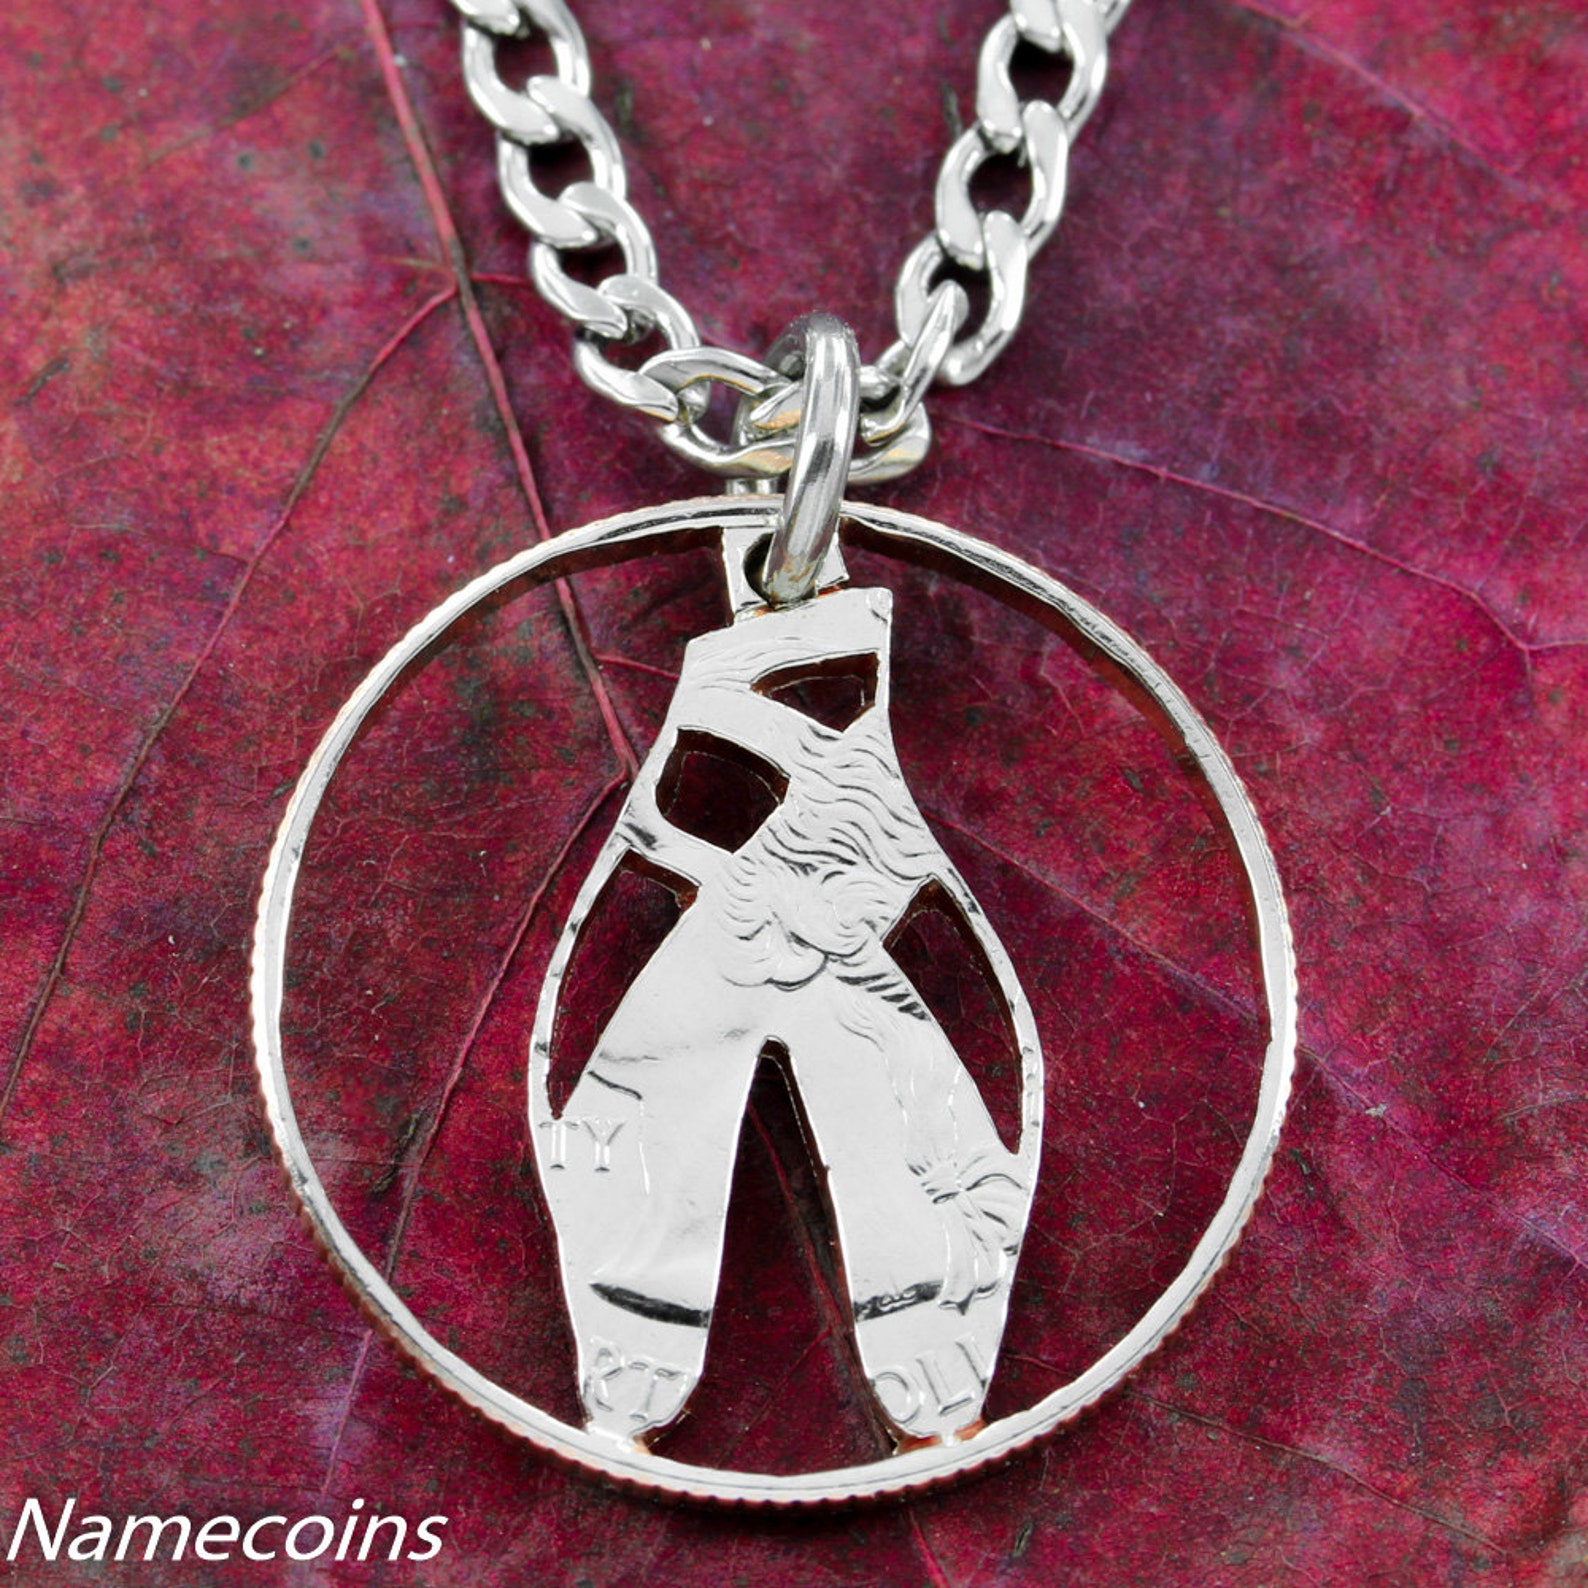 ballerina shoe necklace, dance jewelry, gifts for women, ballet dancer slipper necklace, hand cut coin